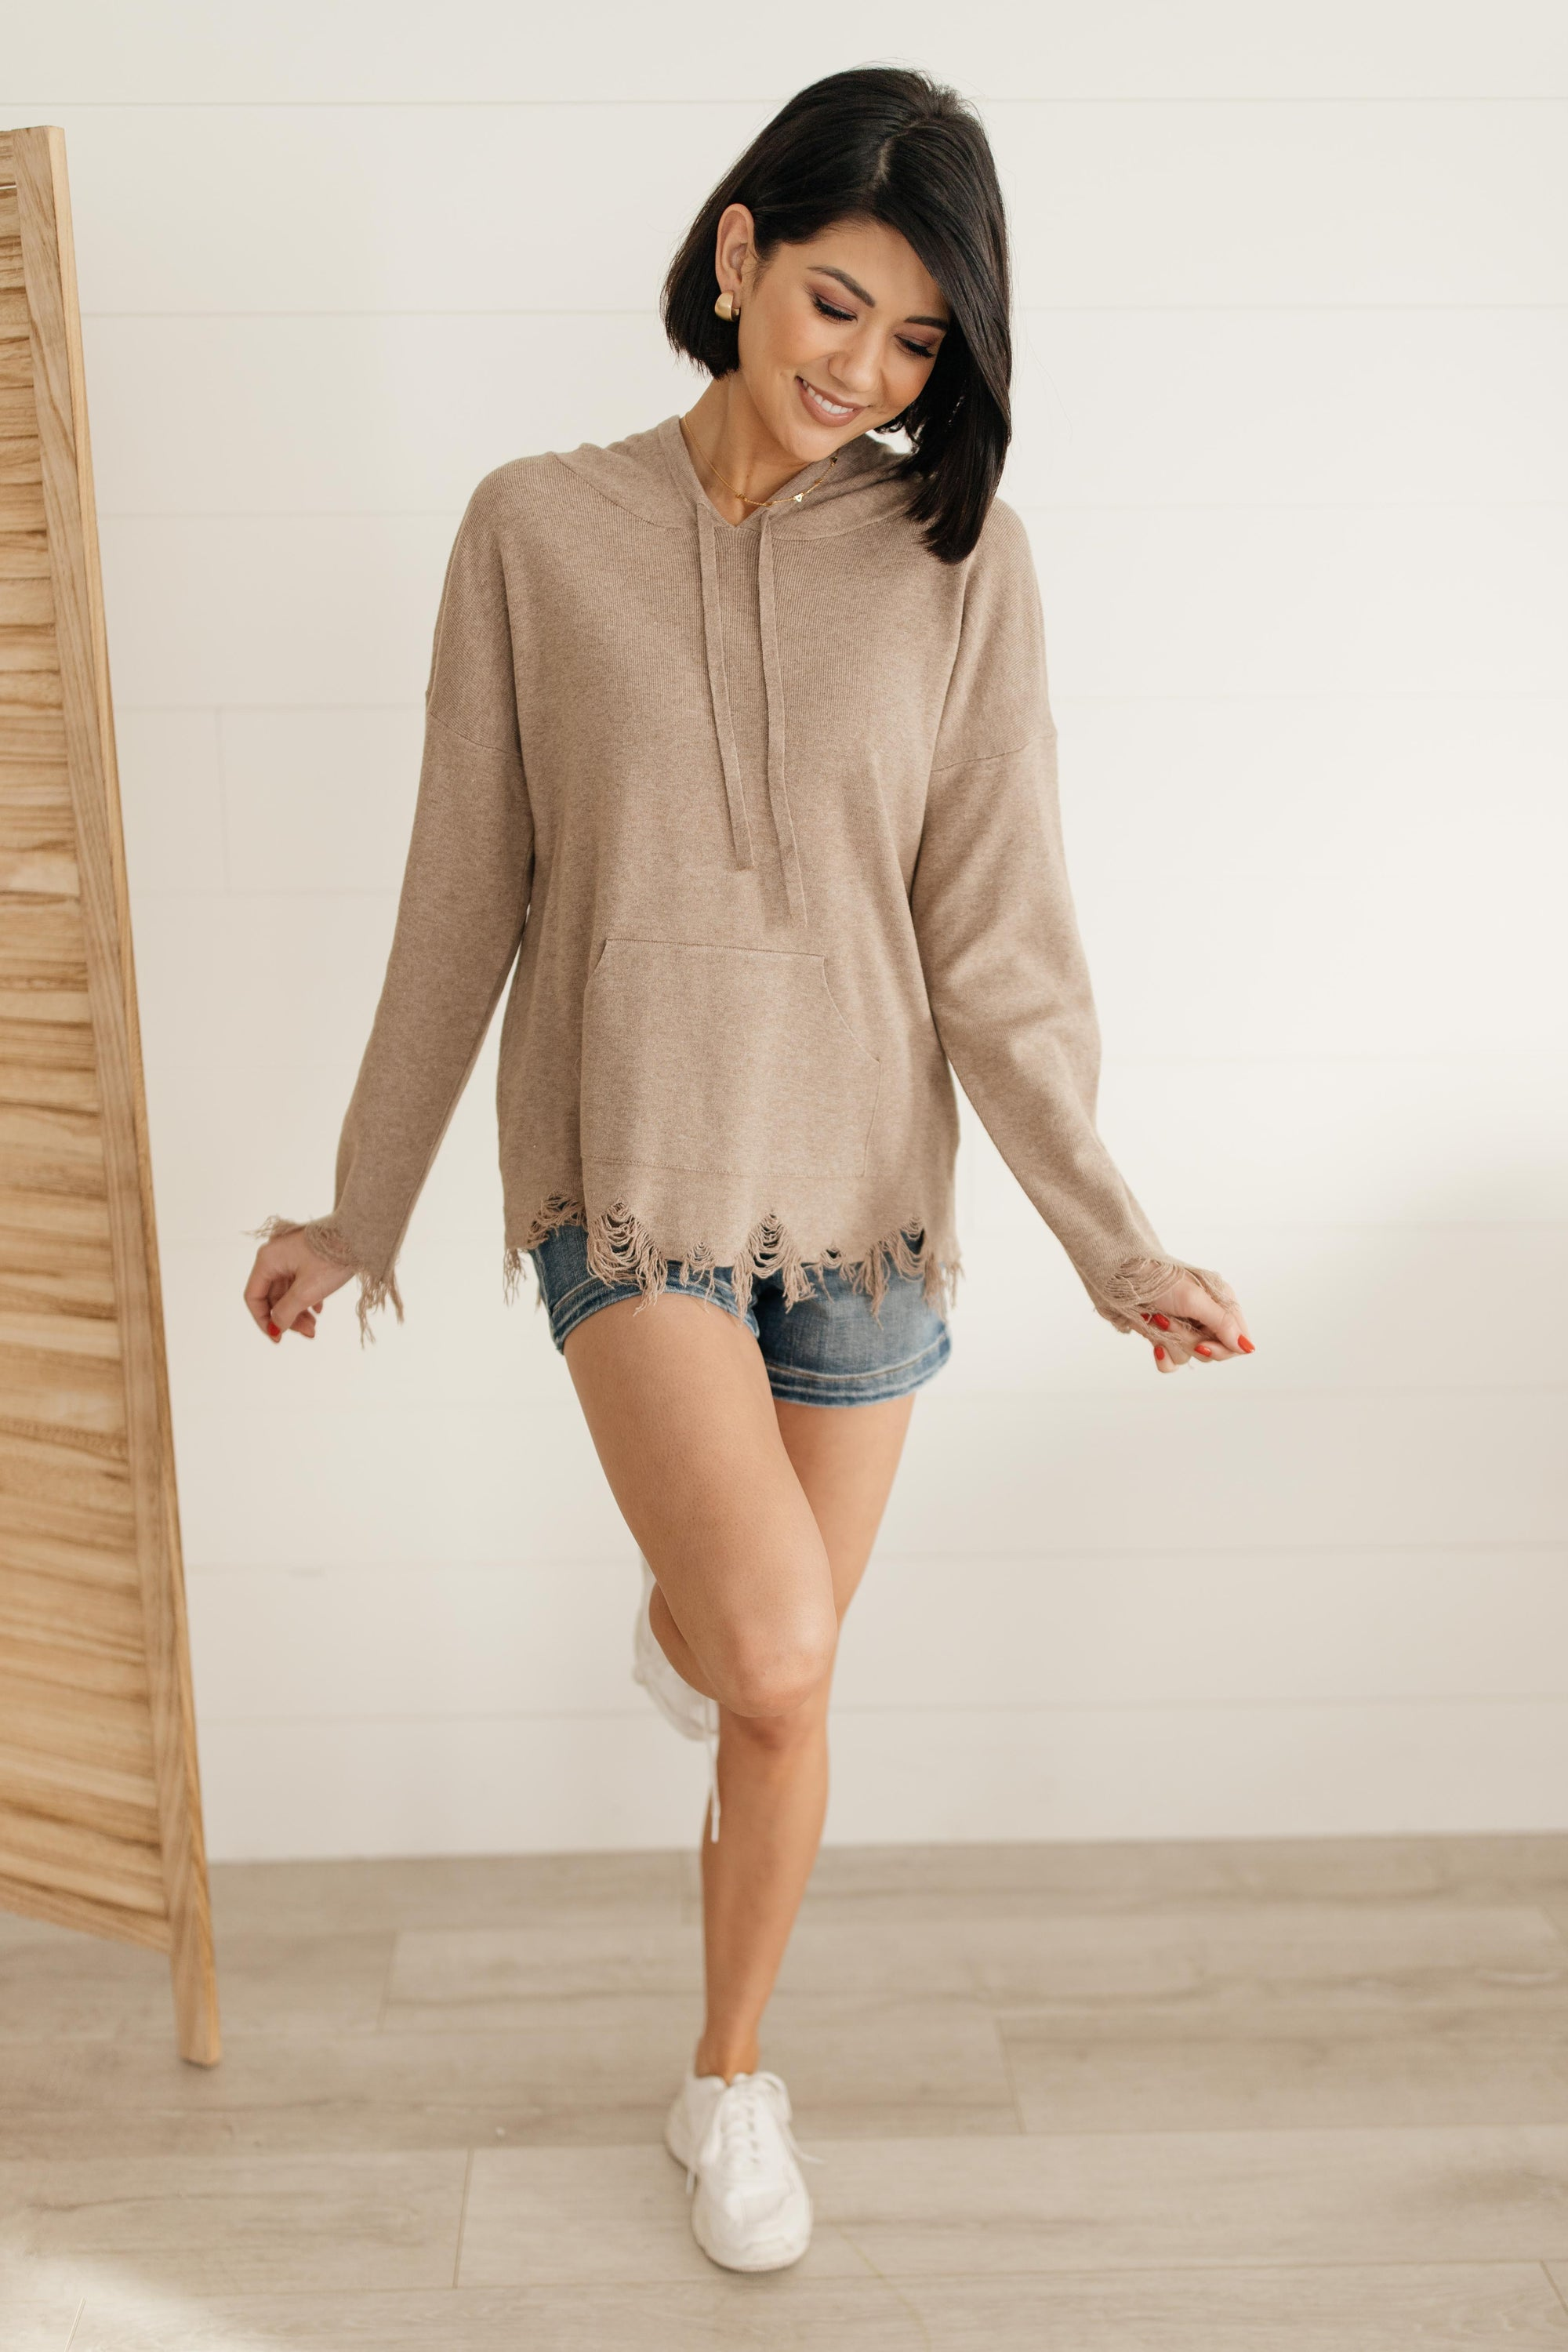 Frayed Edges Hoodie in Taupe-[option4]-[option5]-[option6]-[option7]-[option8]-Womens-Clothing-Shop